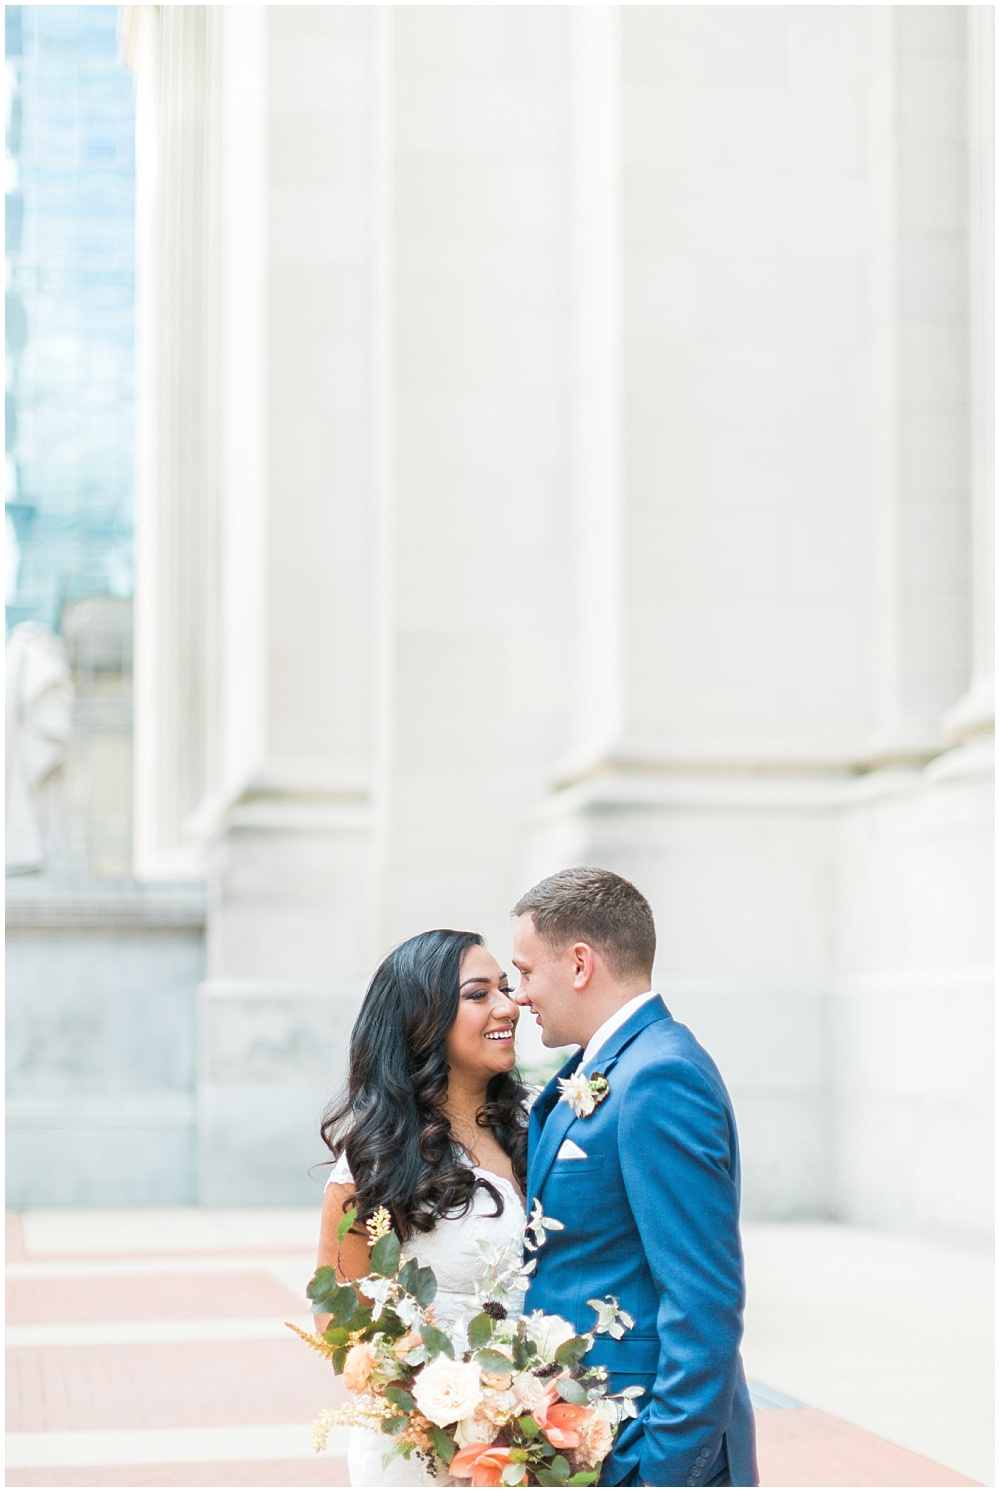 lace wedding dress; bride and groom portraits; blue groom's suit; large neutral bridal bouquet; Mexican inspired gold & floral wedding; Crowne Plaza Indianapolis Downtown Union Station; neutral floral and greenery wedding|Cory + Jackie and Jessica Dum Wedding Coordination